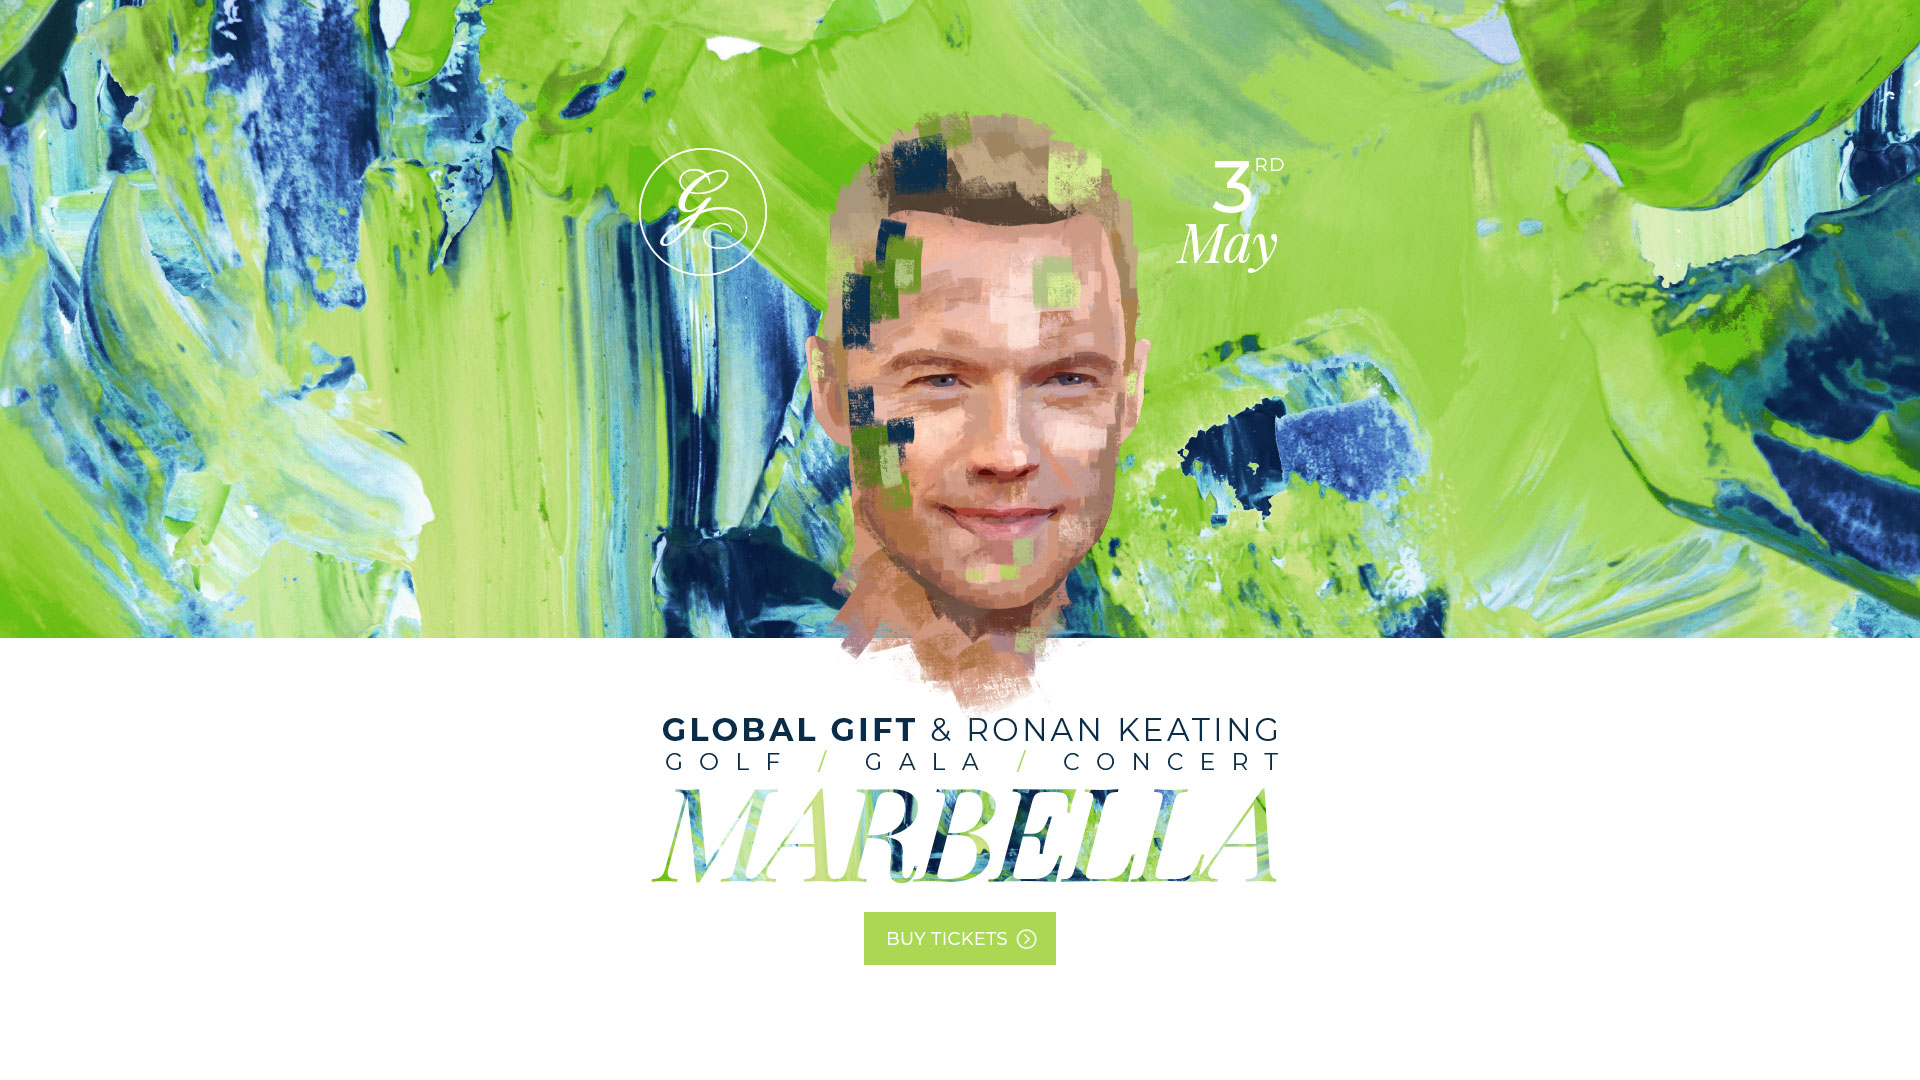 Global Gift & Ronan Keating - Golf / Gala / Concert - Marbella - 3 Mayo